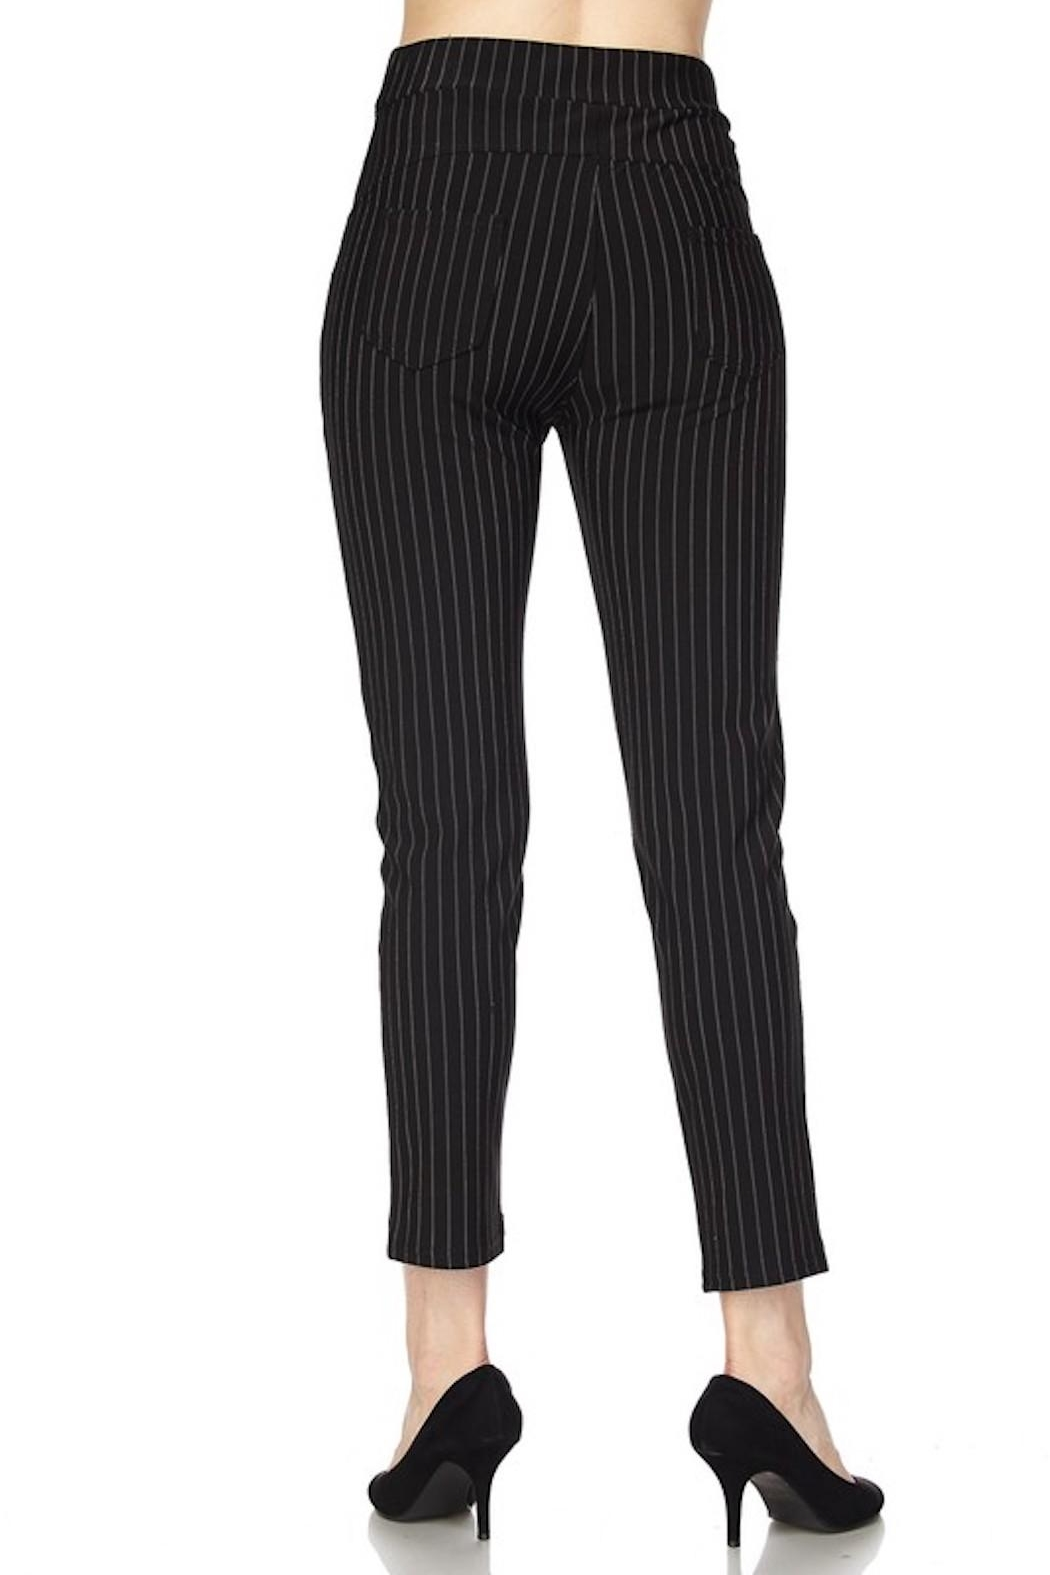 New Mix Pinstripe Stretch Pants - Side Cropped Image